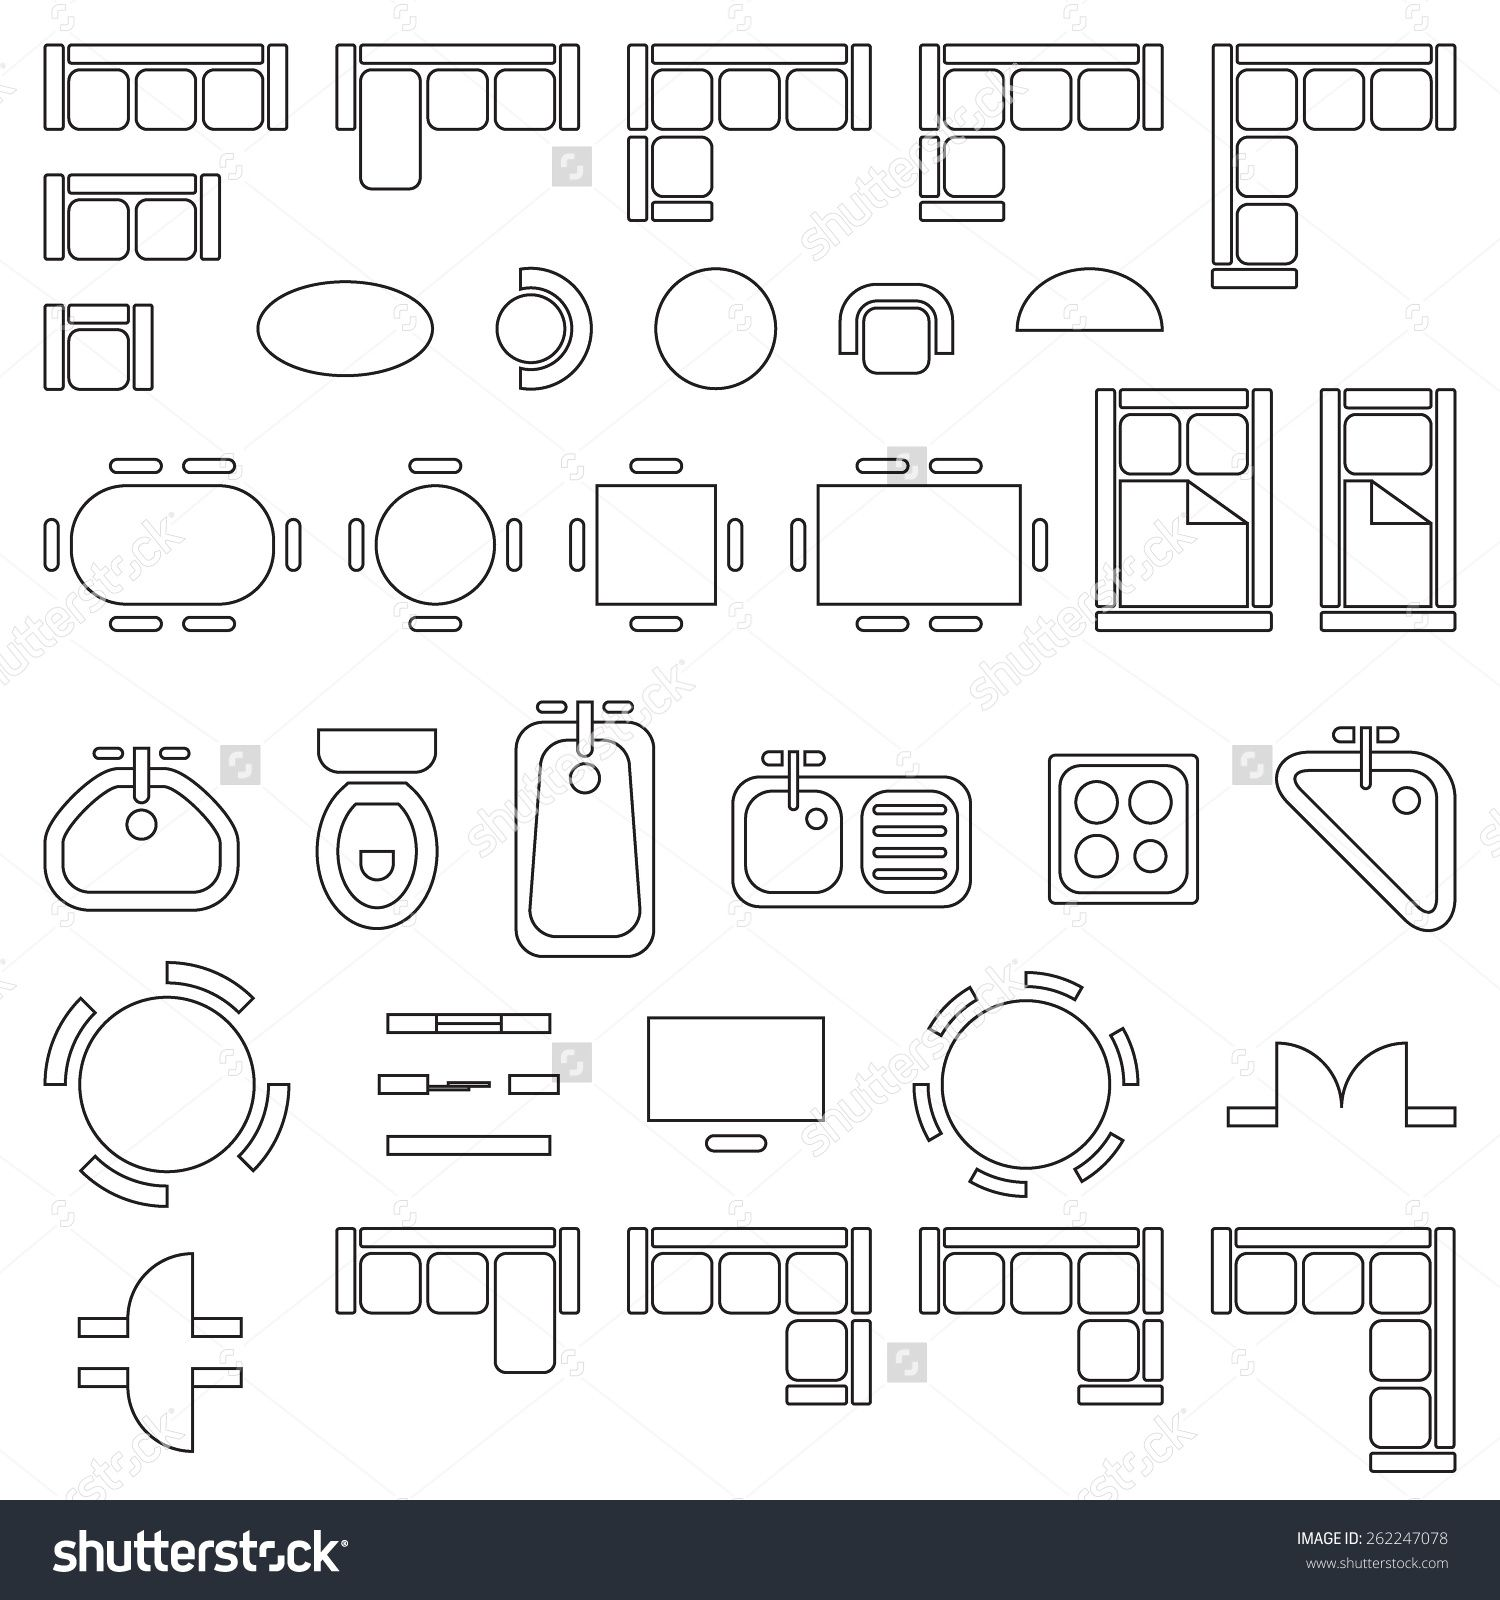 tables and chairs meaning antique standard furniture symbols used in architecture plans